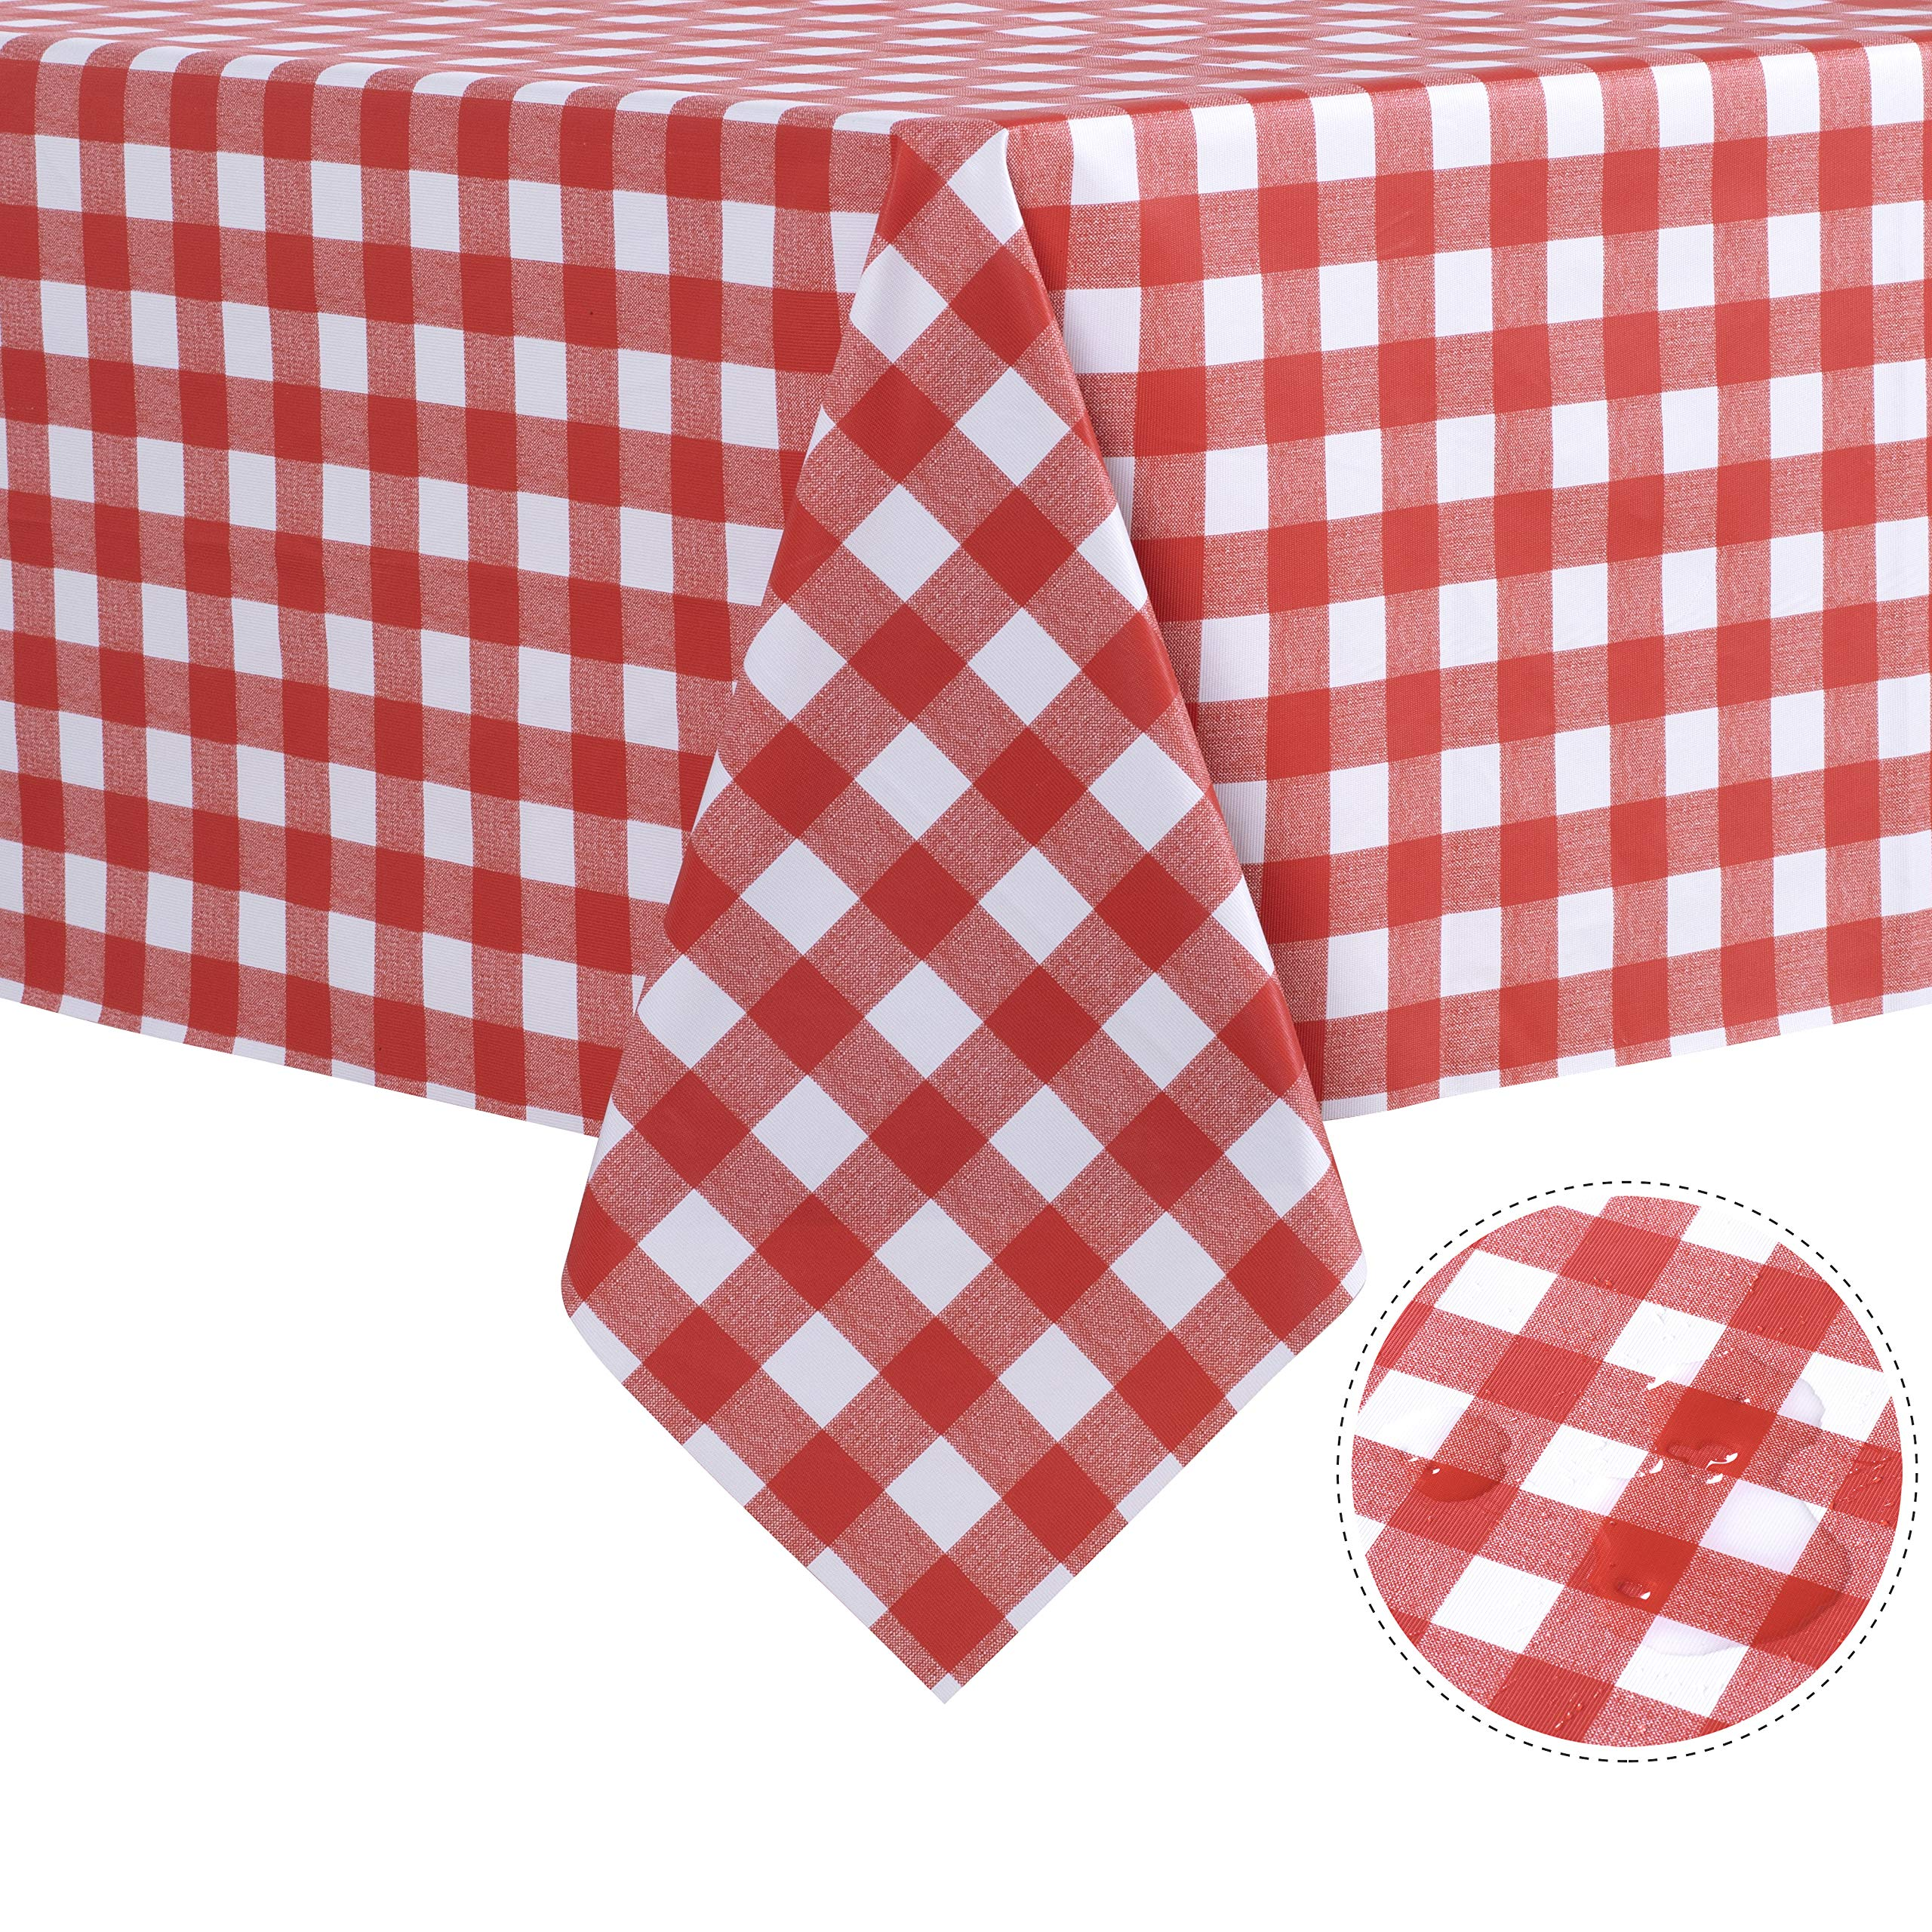 sancua Checkered Vinyl Rectangle Tablecloth - 54 x 108 Inch - 100% Waterproof Oil Proof Spill Proof PVC Table Cloth, Wipe Clean Table Cover for Dining Table, Buffet Parties and Camping, Red and White